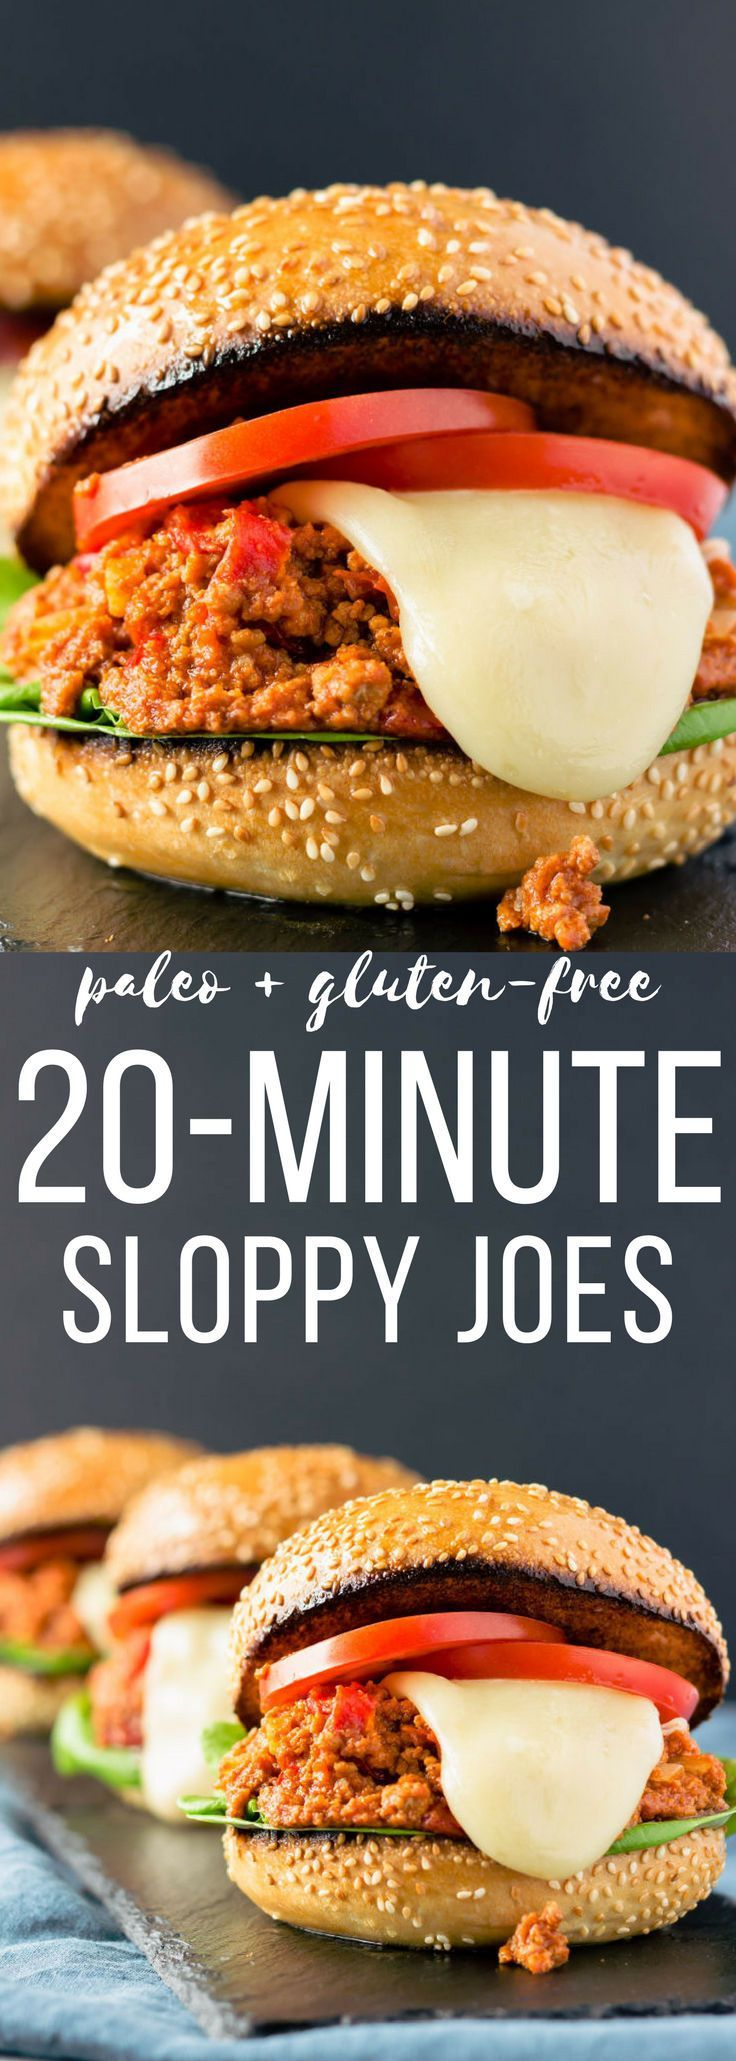 These quick and easy paleo sloppy joes can be made, from scratch, in just 20 minutes. This clean eating, kid-friendly recipe is the perfect weeknight meal and is guaranteed to please the whole family. Gluten-free and dairy-free options also available. | o